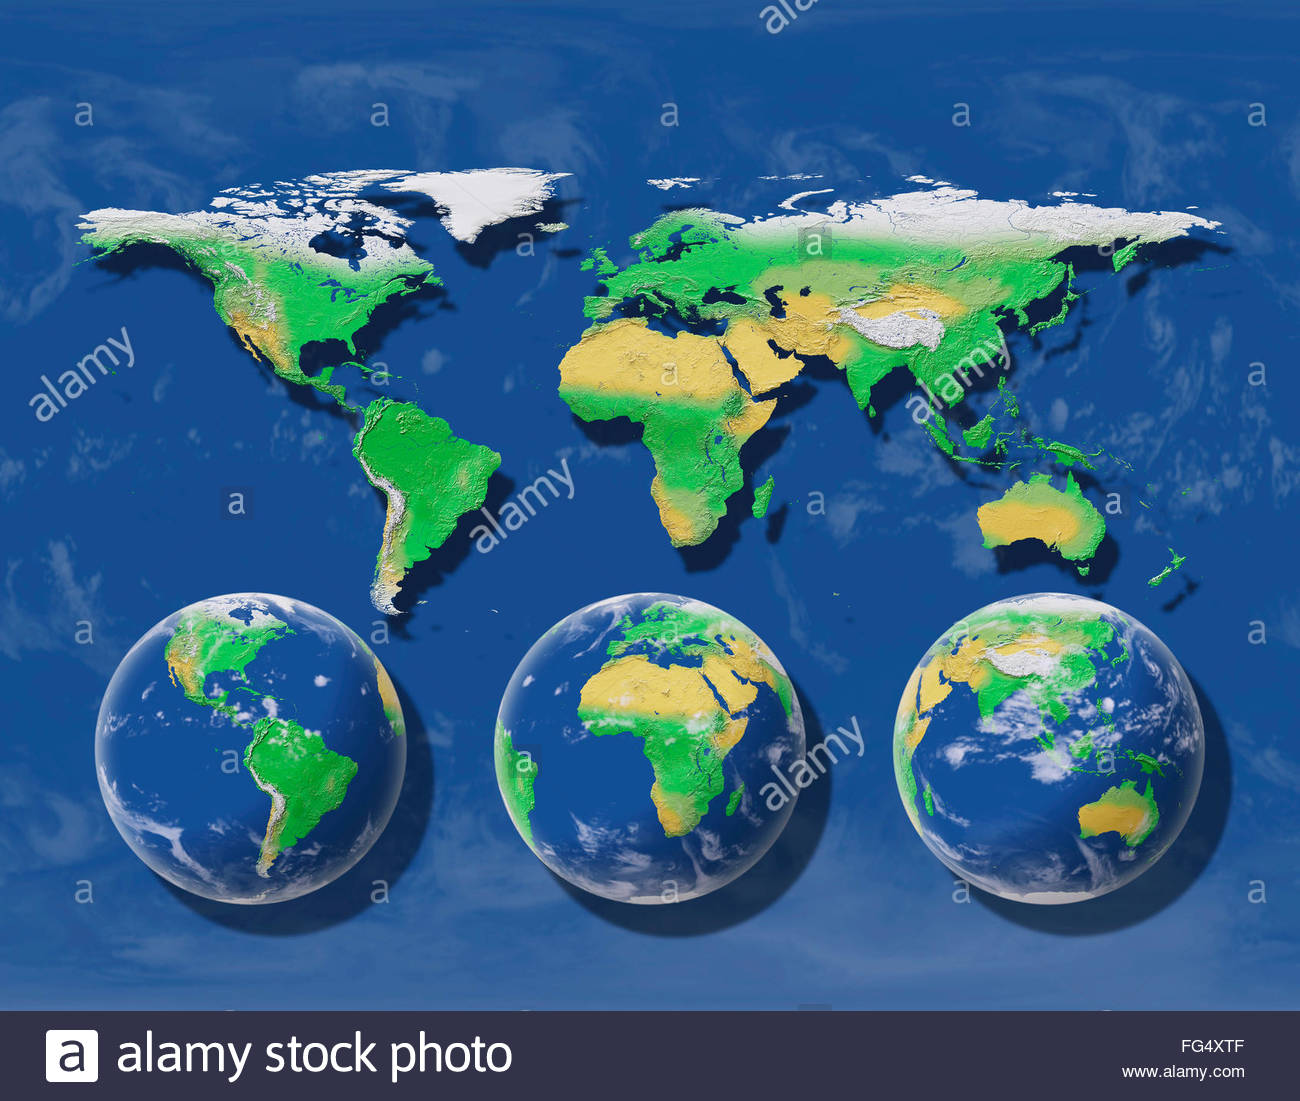 spherical-earth-projected-on-a-flat-map-